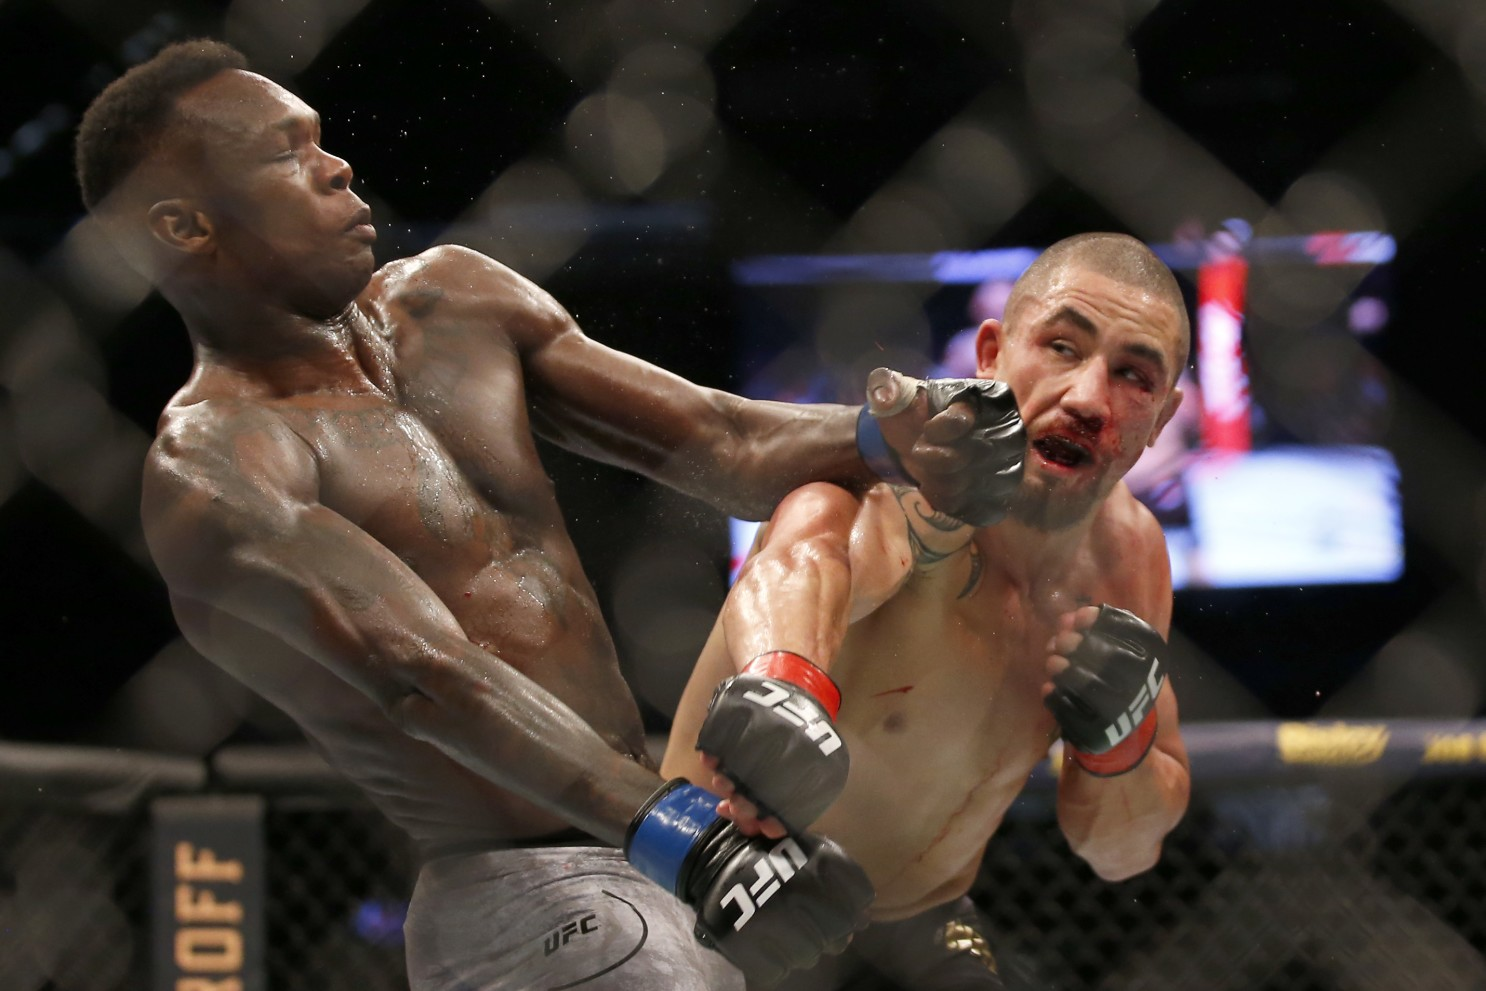 Five UFC fights to look forward to in 2021 - ufc